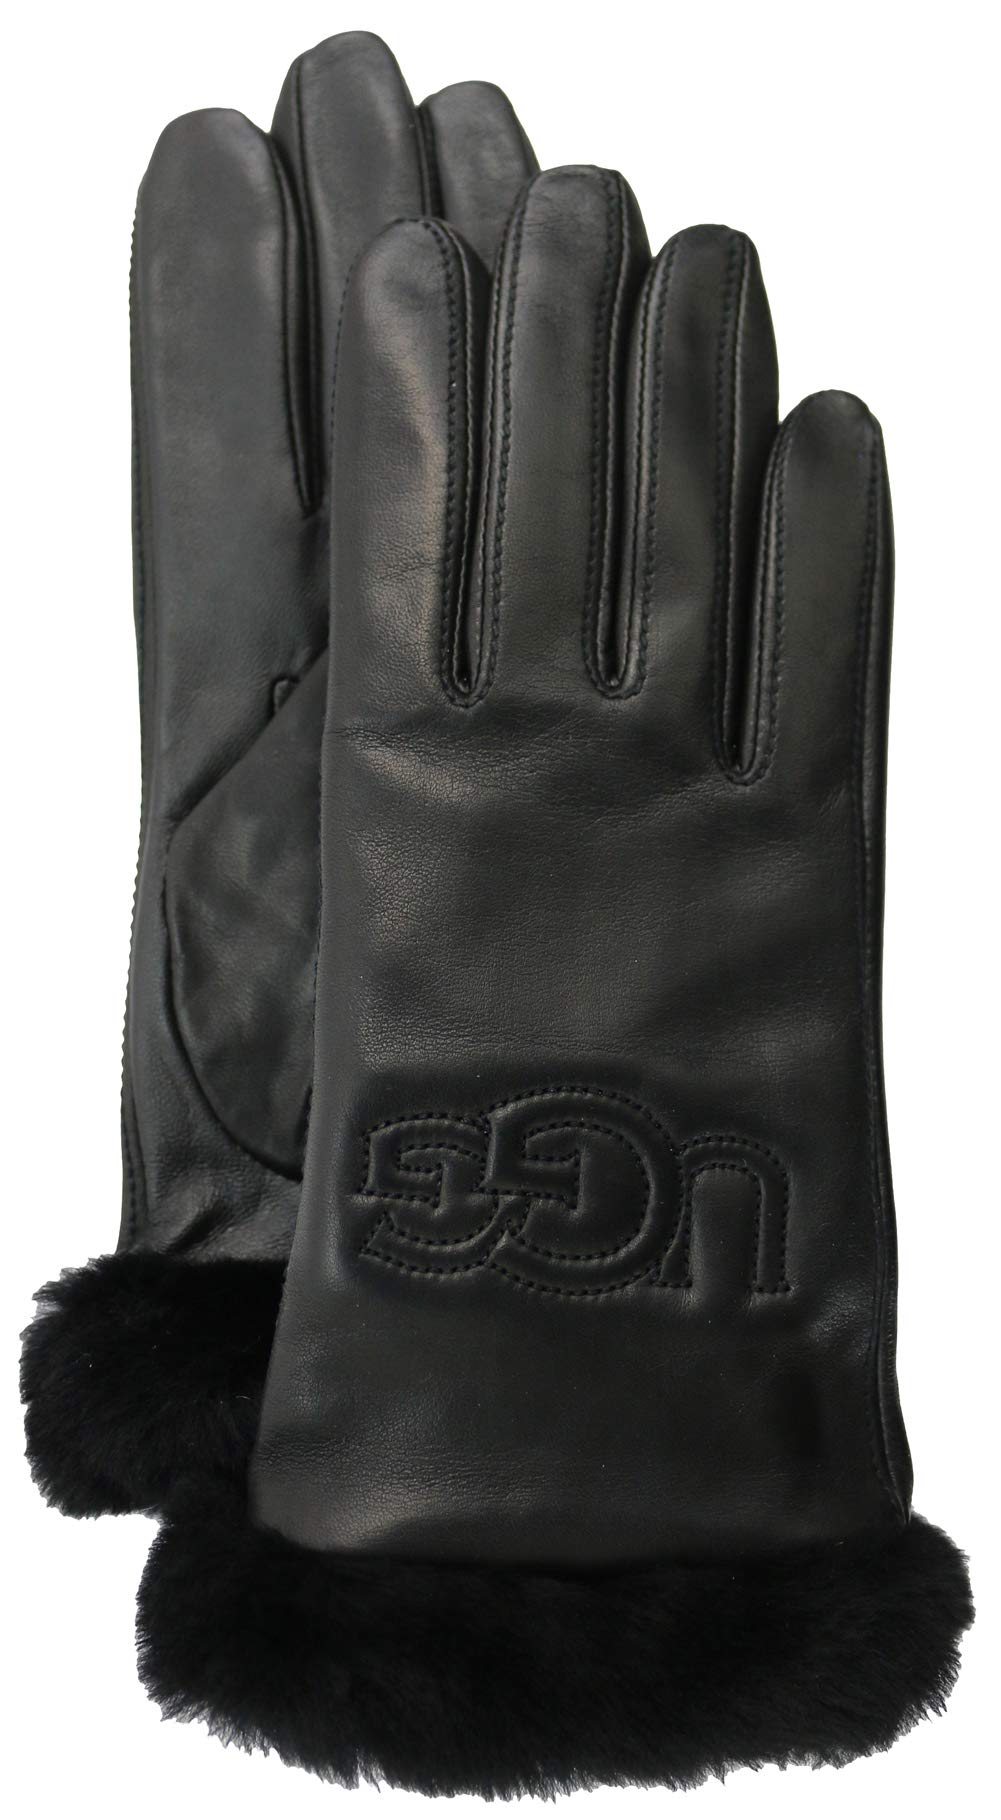 UGG Women's Classic Leather Logo Tech Gloves Black 1 MD by UGG